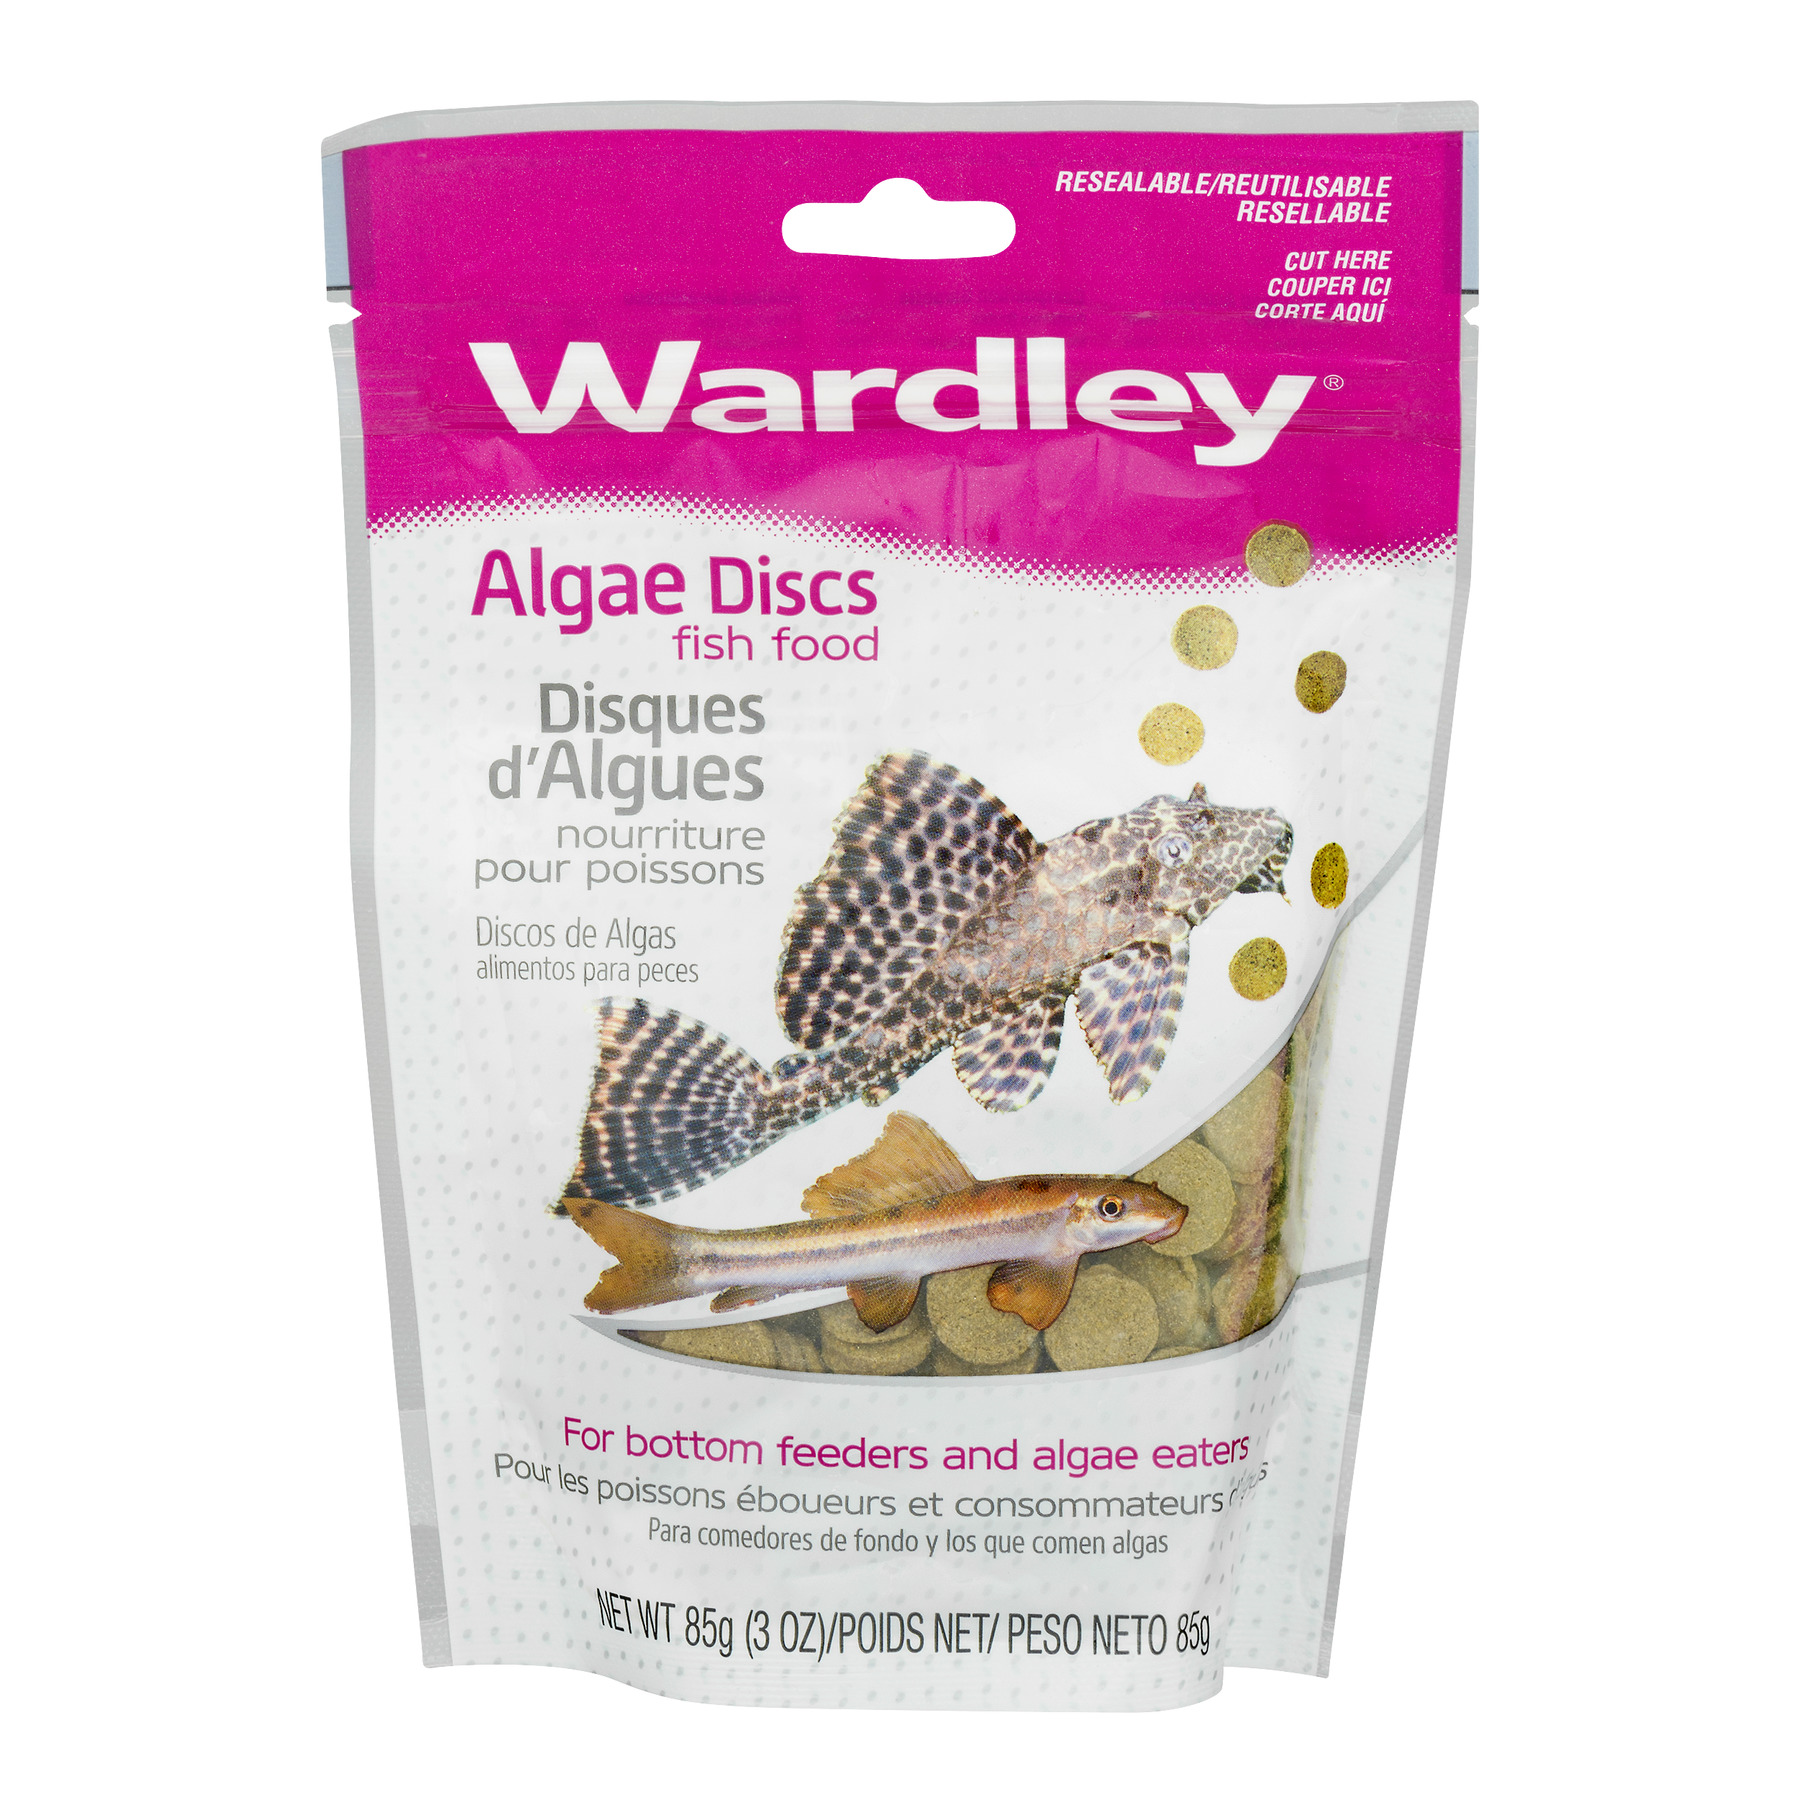 Wardley Algae Discs Fish Food, 3.0-oz.